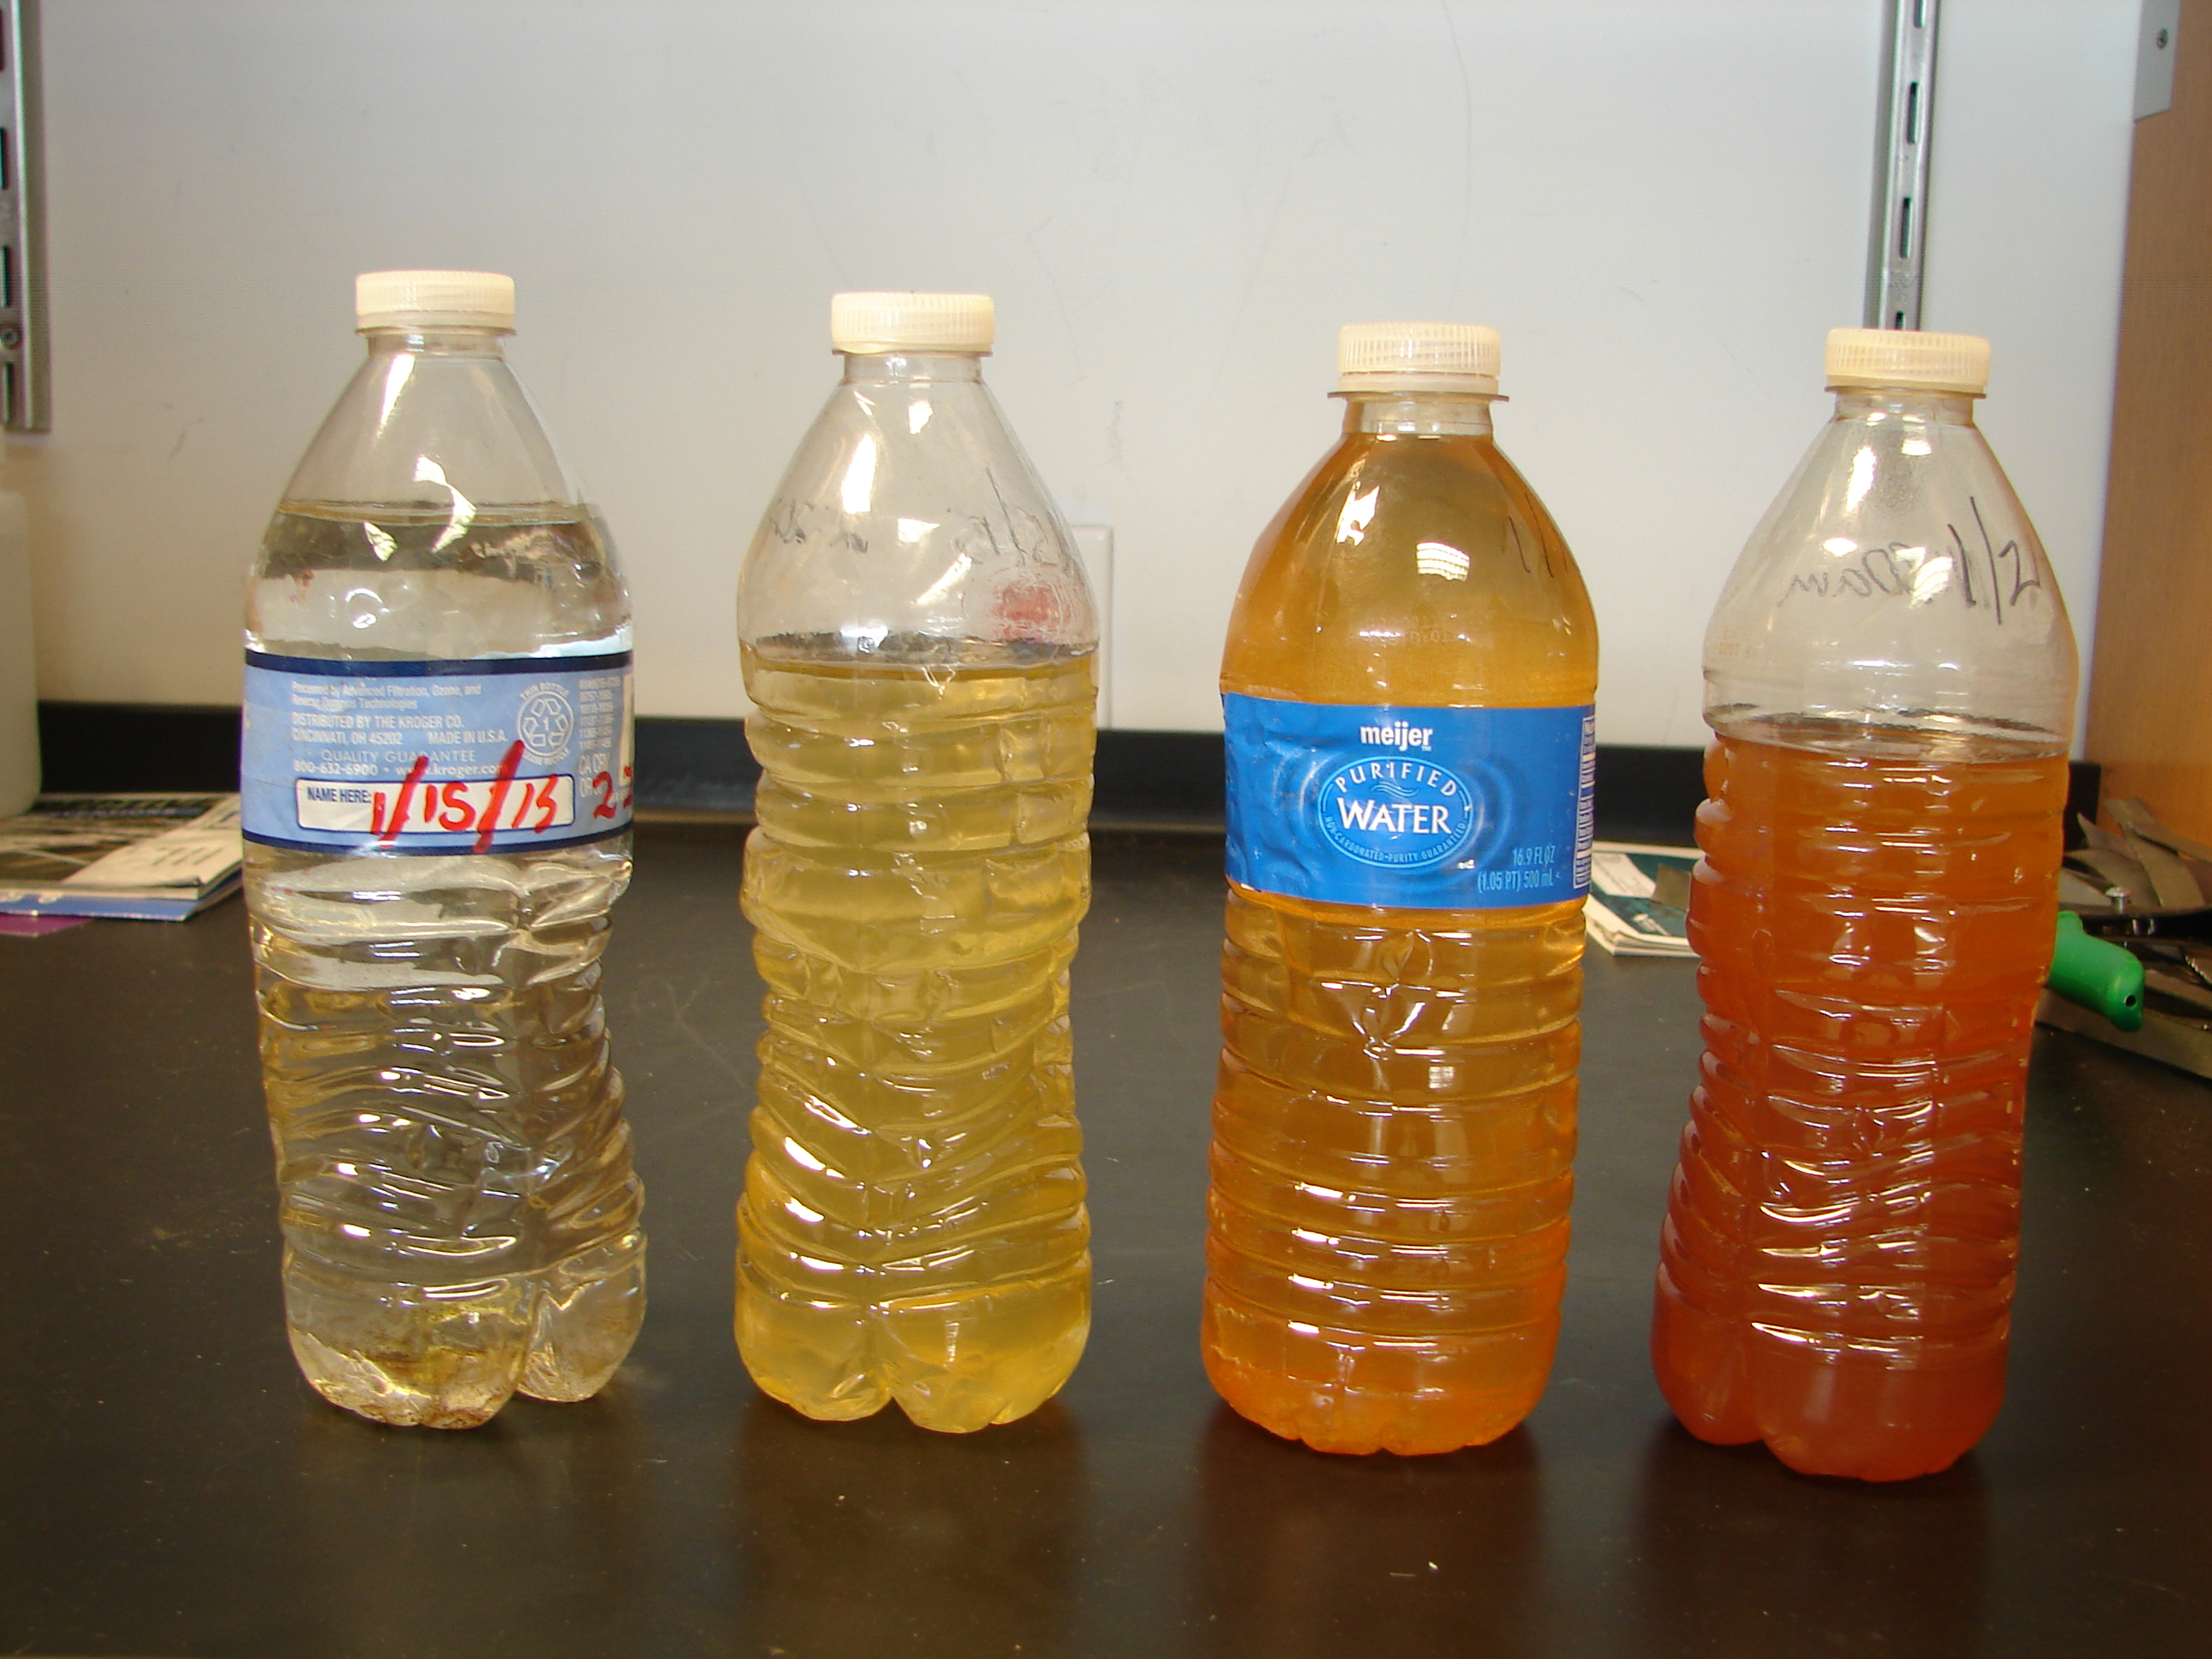 This image provided by FlintWaterStudy.org shows water samples from a Flint, Mich. home. The bottles were collected, from left, on Jan. 15 (2), Jan. 16 and Jan. 21, 2015.